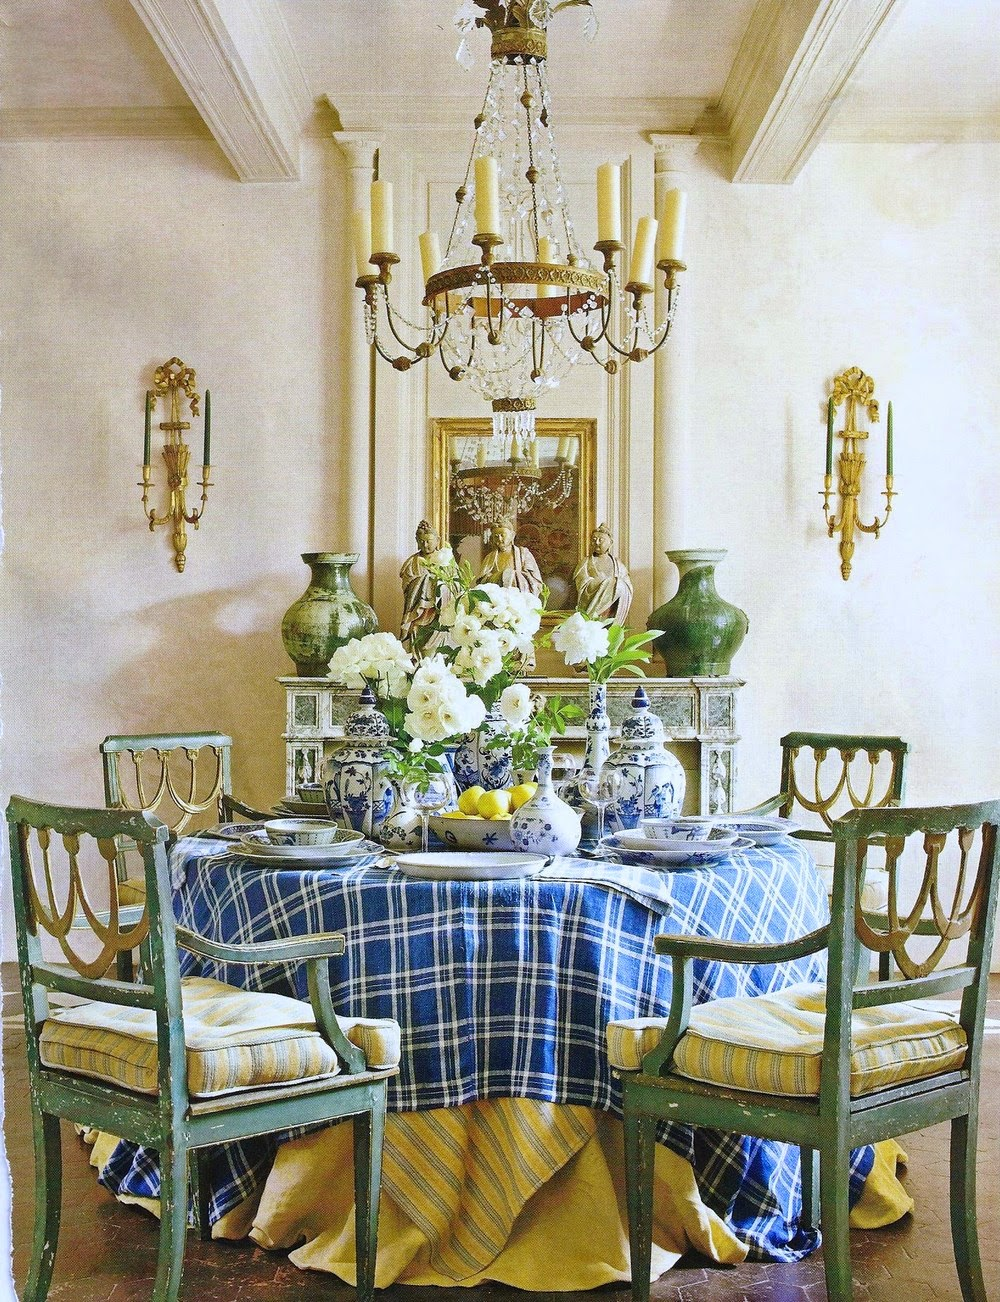 For Those Who Like Layers Of Pattern, A Tablecloth For Your Round Dining  Room Table Is A Great Way To Mix In More.